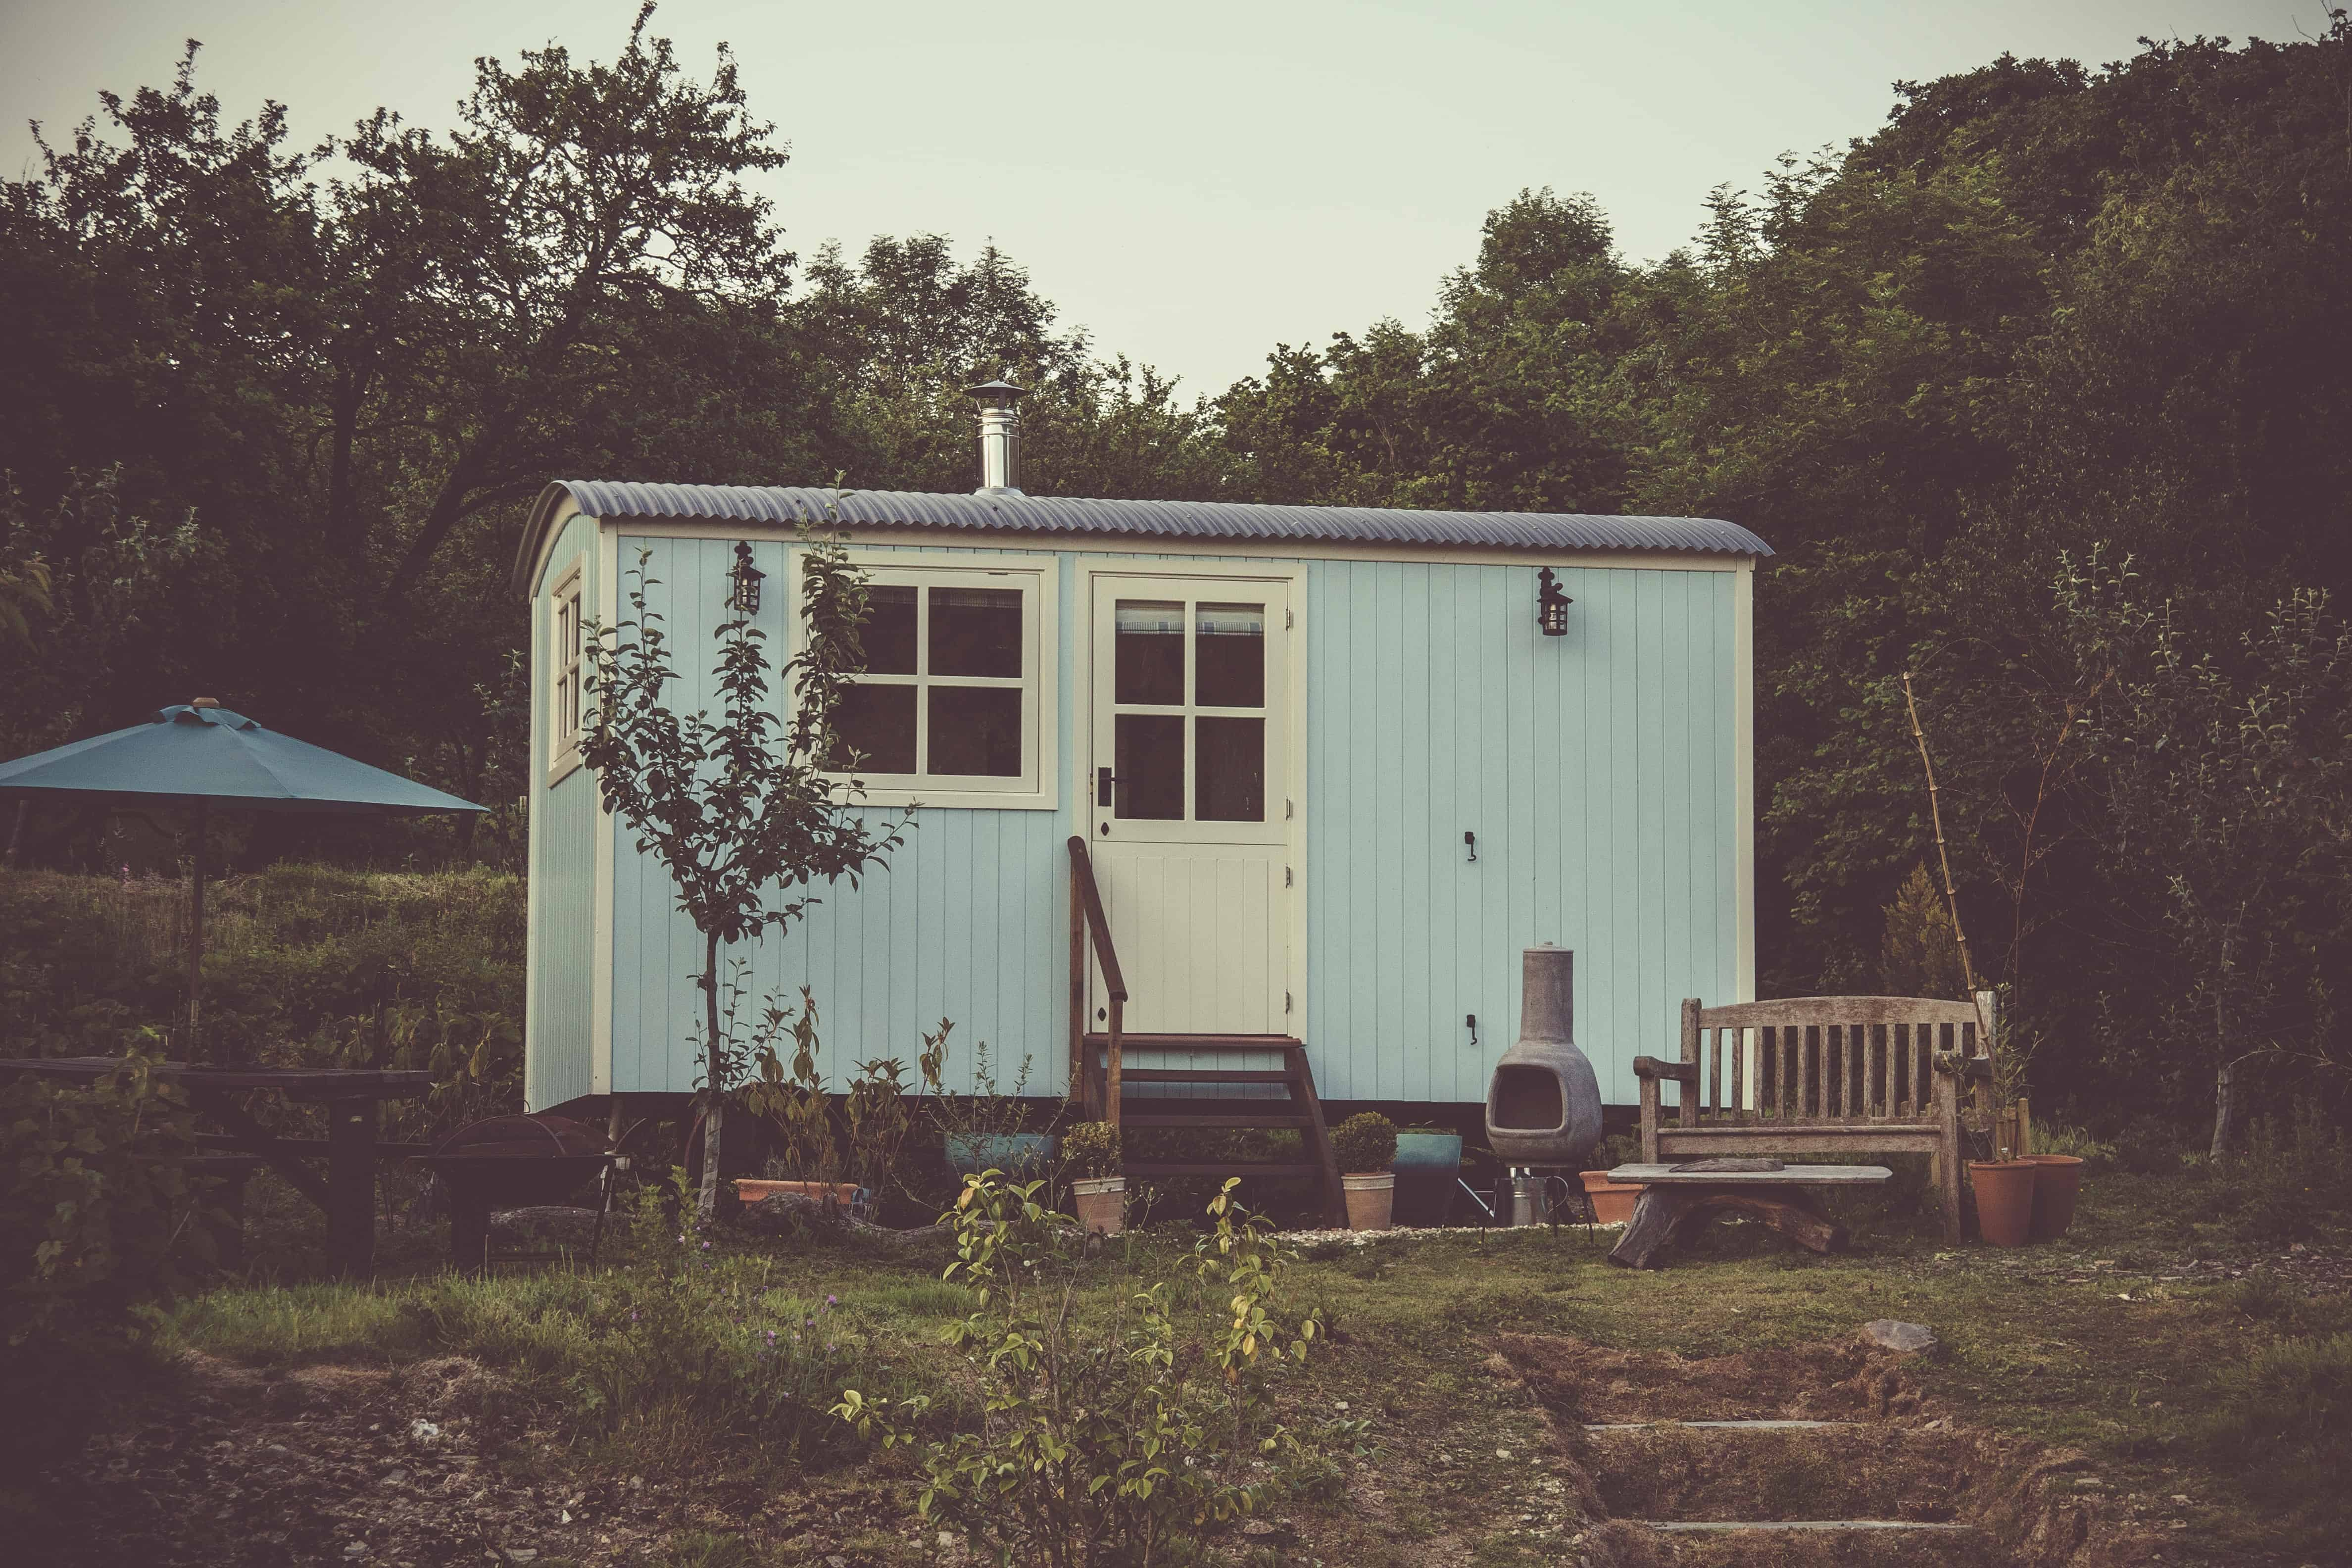 How to design a tiny house [Recommended free design software]